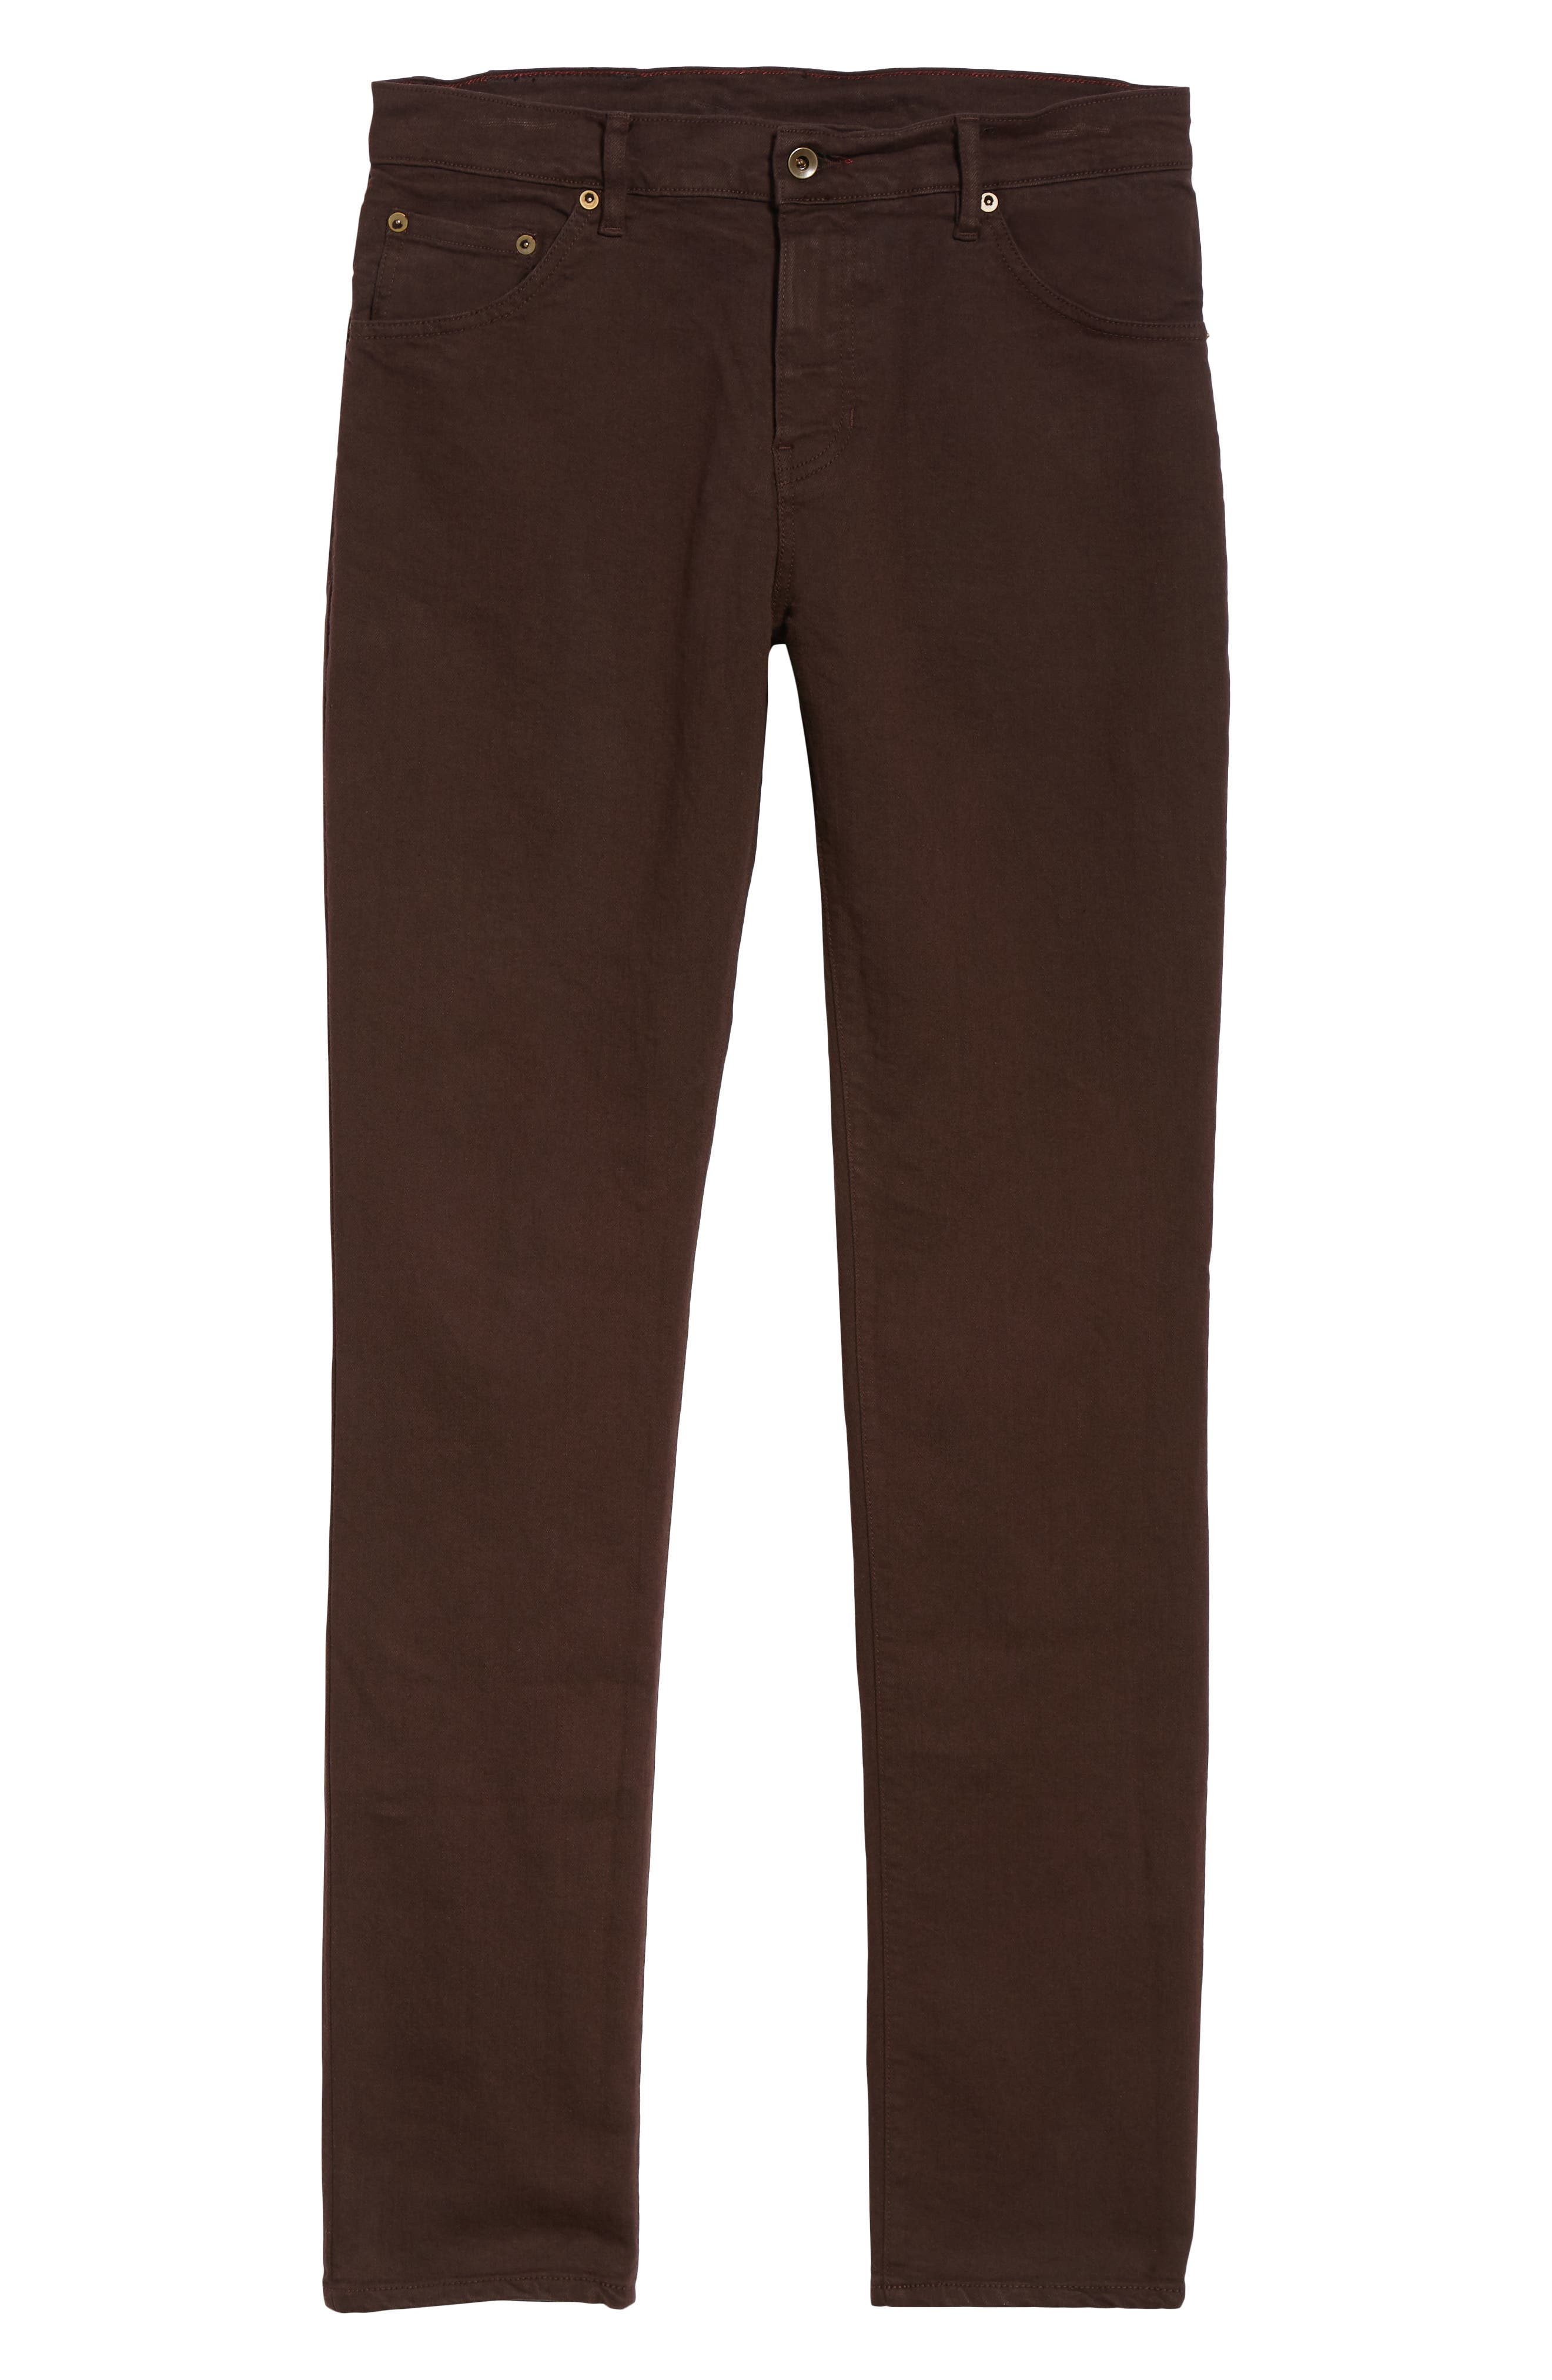 Raleight Denim Martin Skinny Fit Jeans,                             Alternate thumbnail 6, color,                             CURRANT